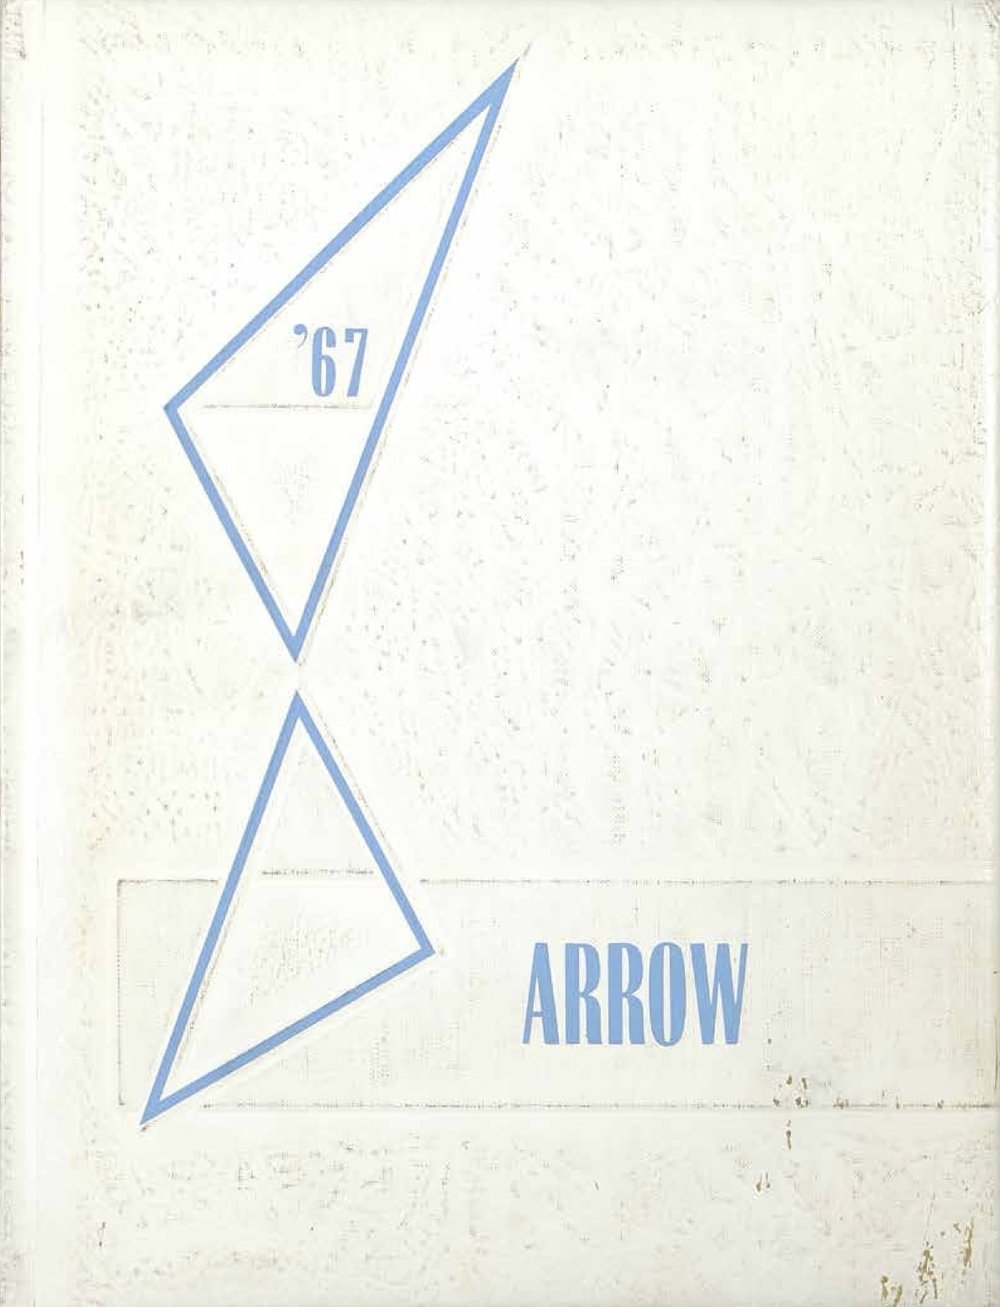 The Arrow 1967